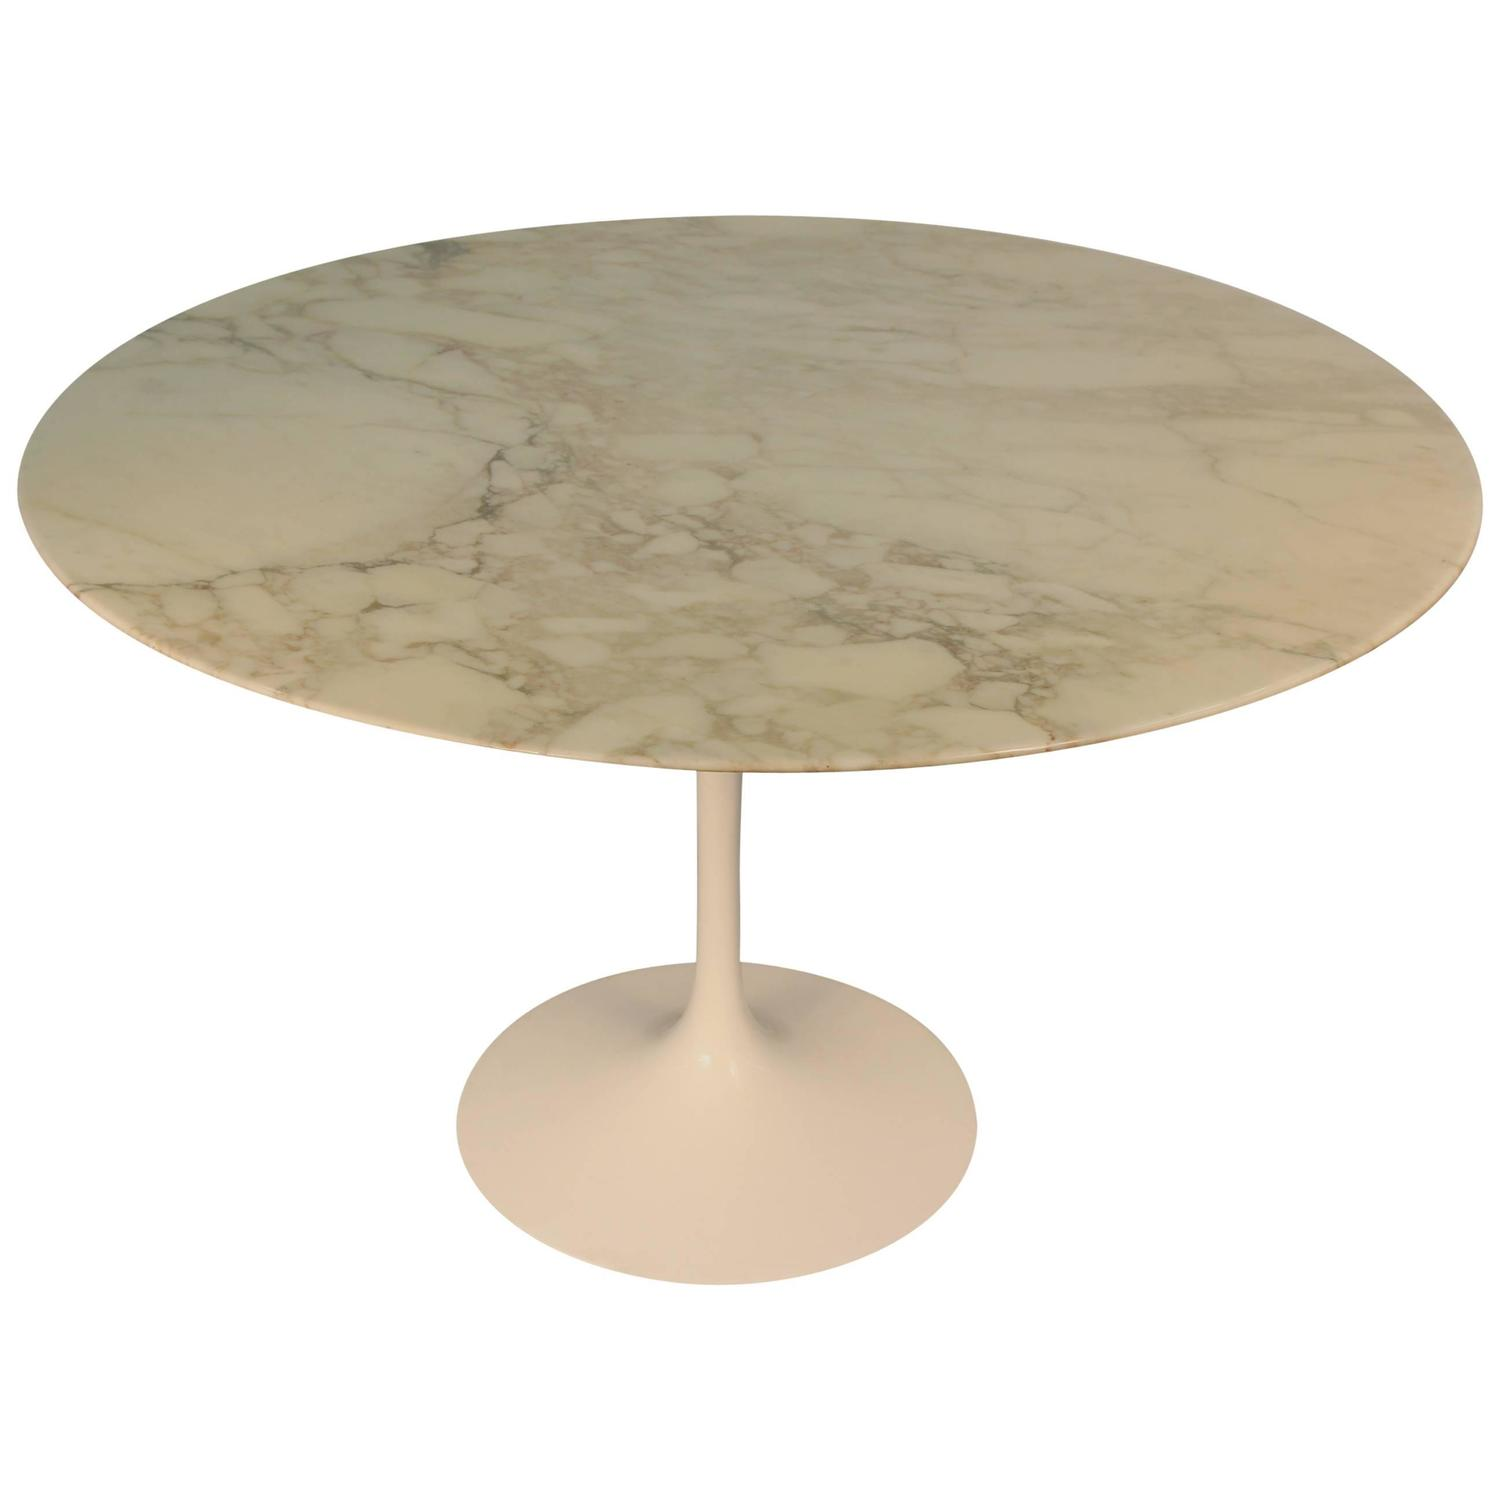 Eero saarinen carrara marble top tulip dining table at 1stdibs for Tulip dining table